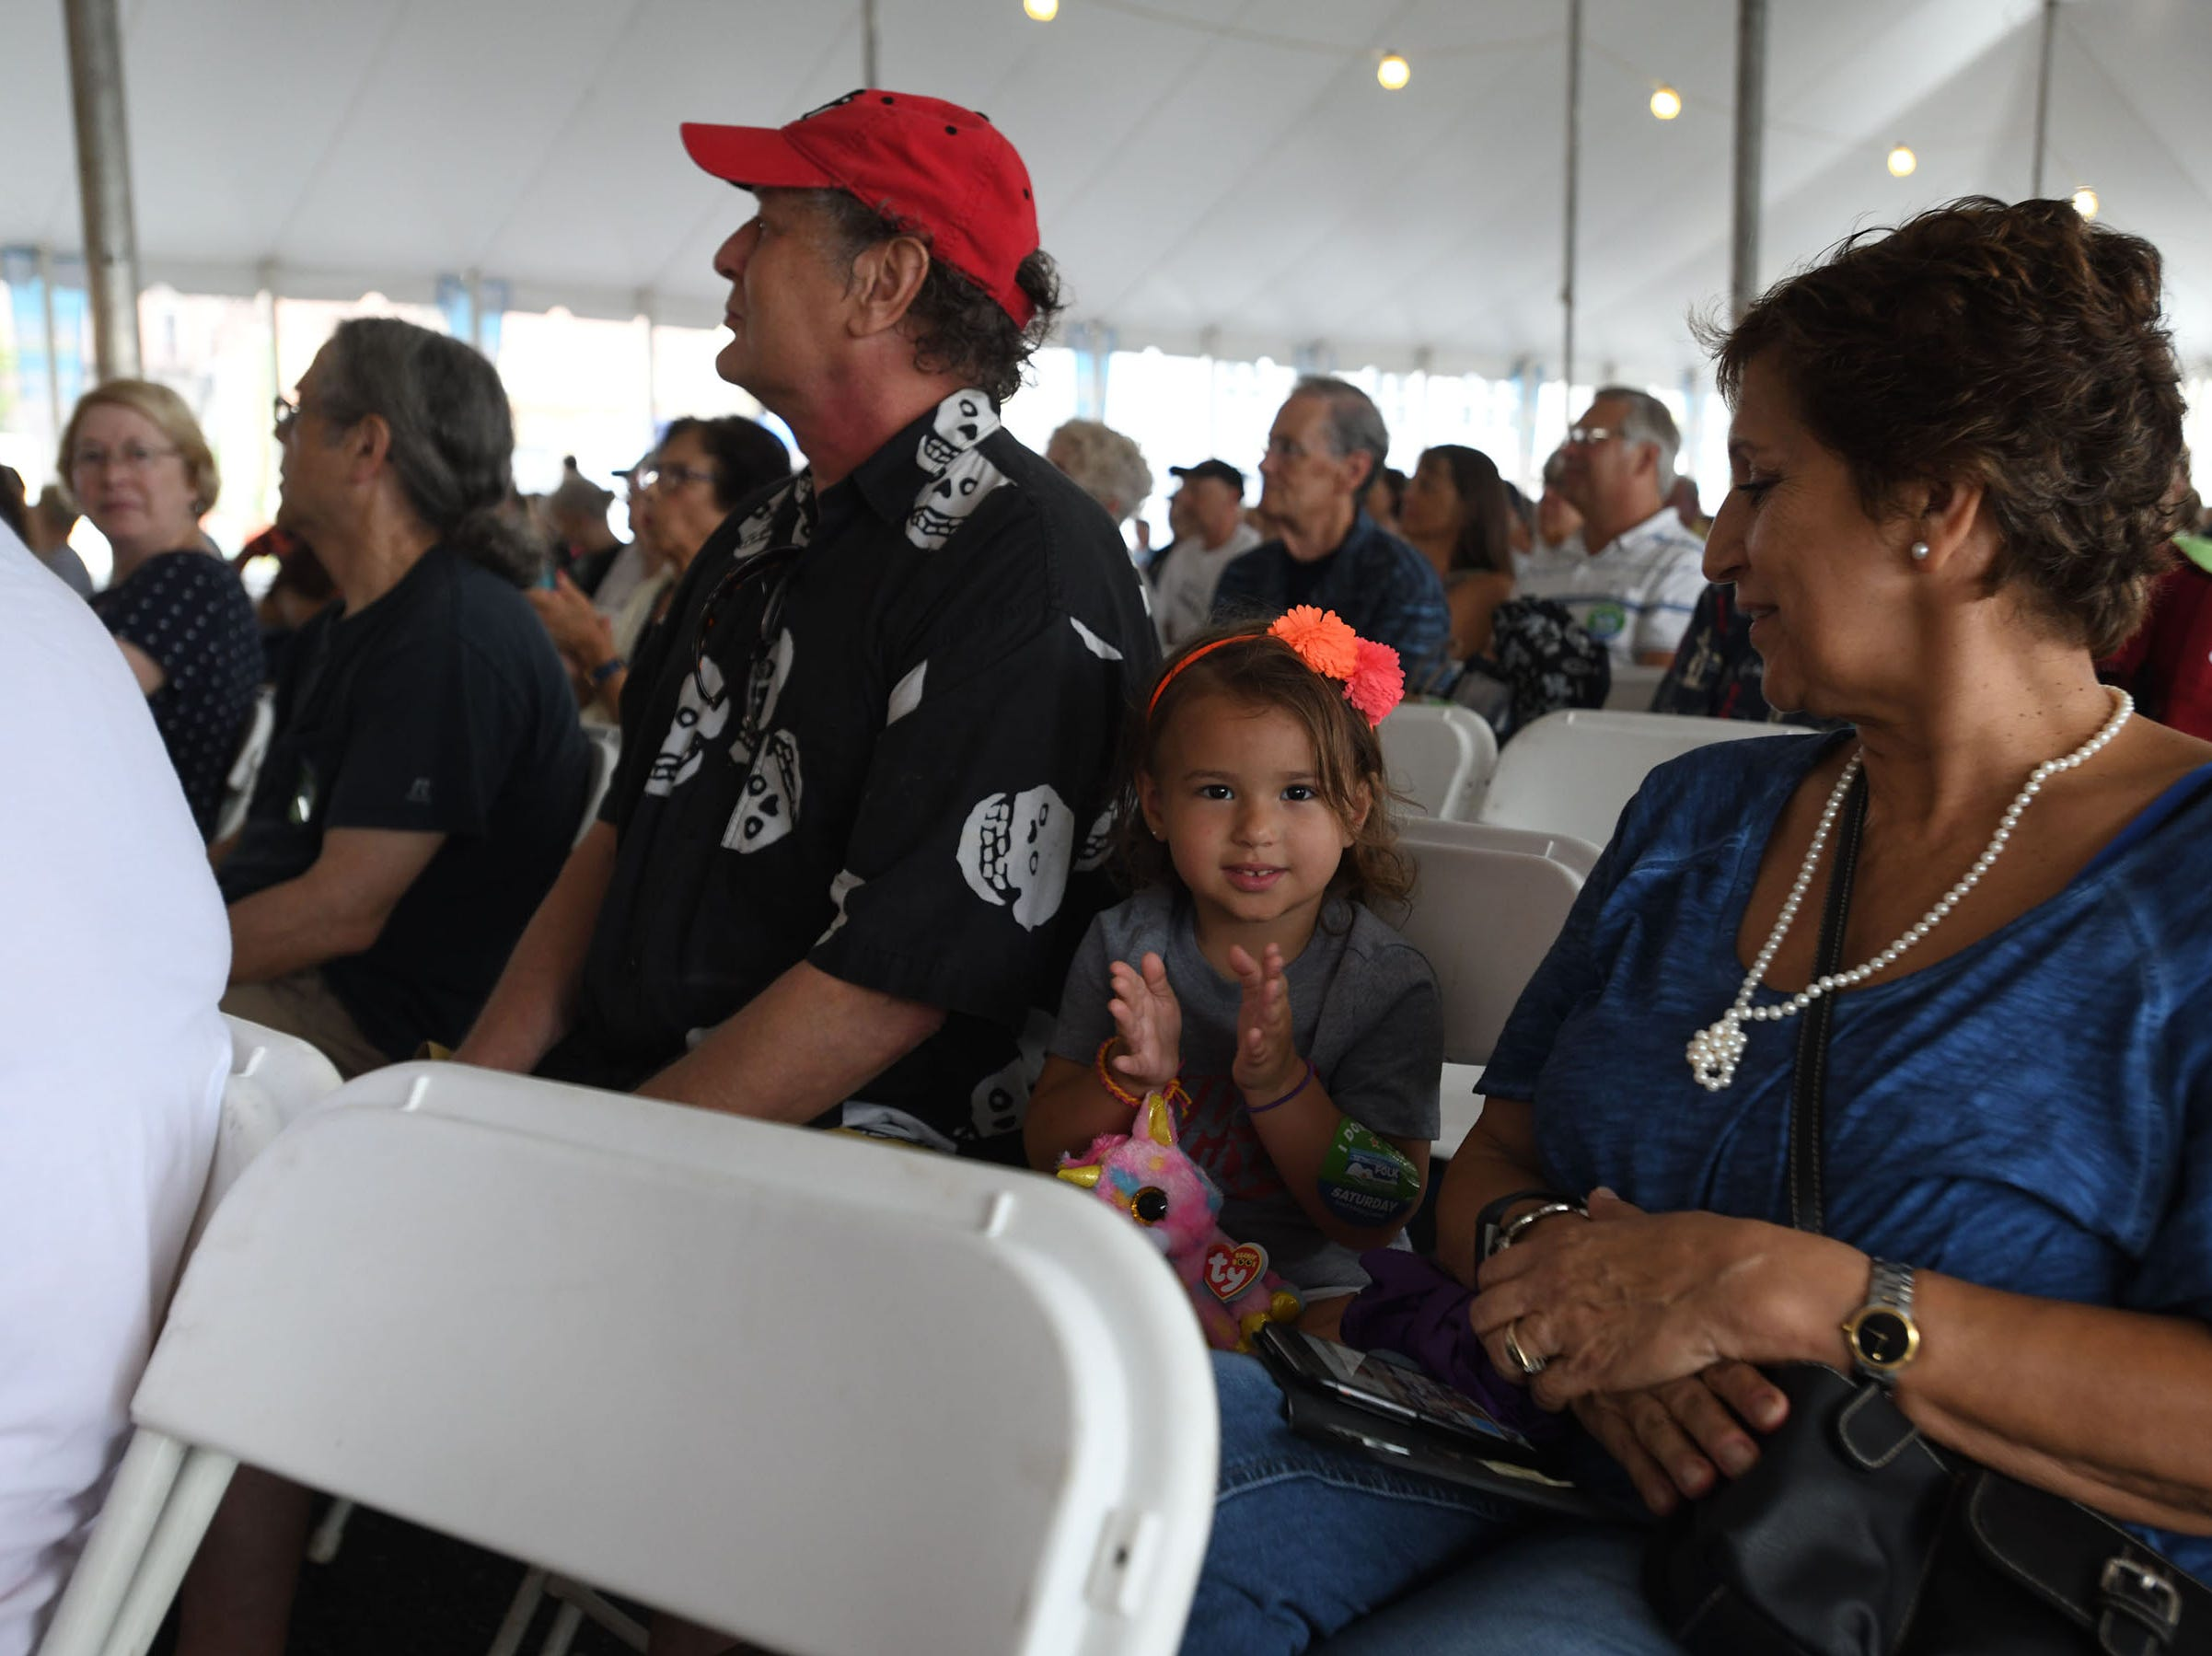 A little girl claps along with the Mariachi Band during the 78th National Folk Festival on Saturday, Sept. 8, 2018 in Salisbury, Md.